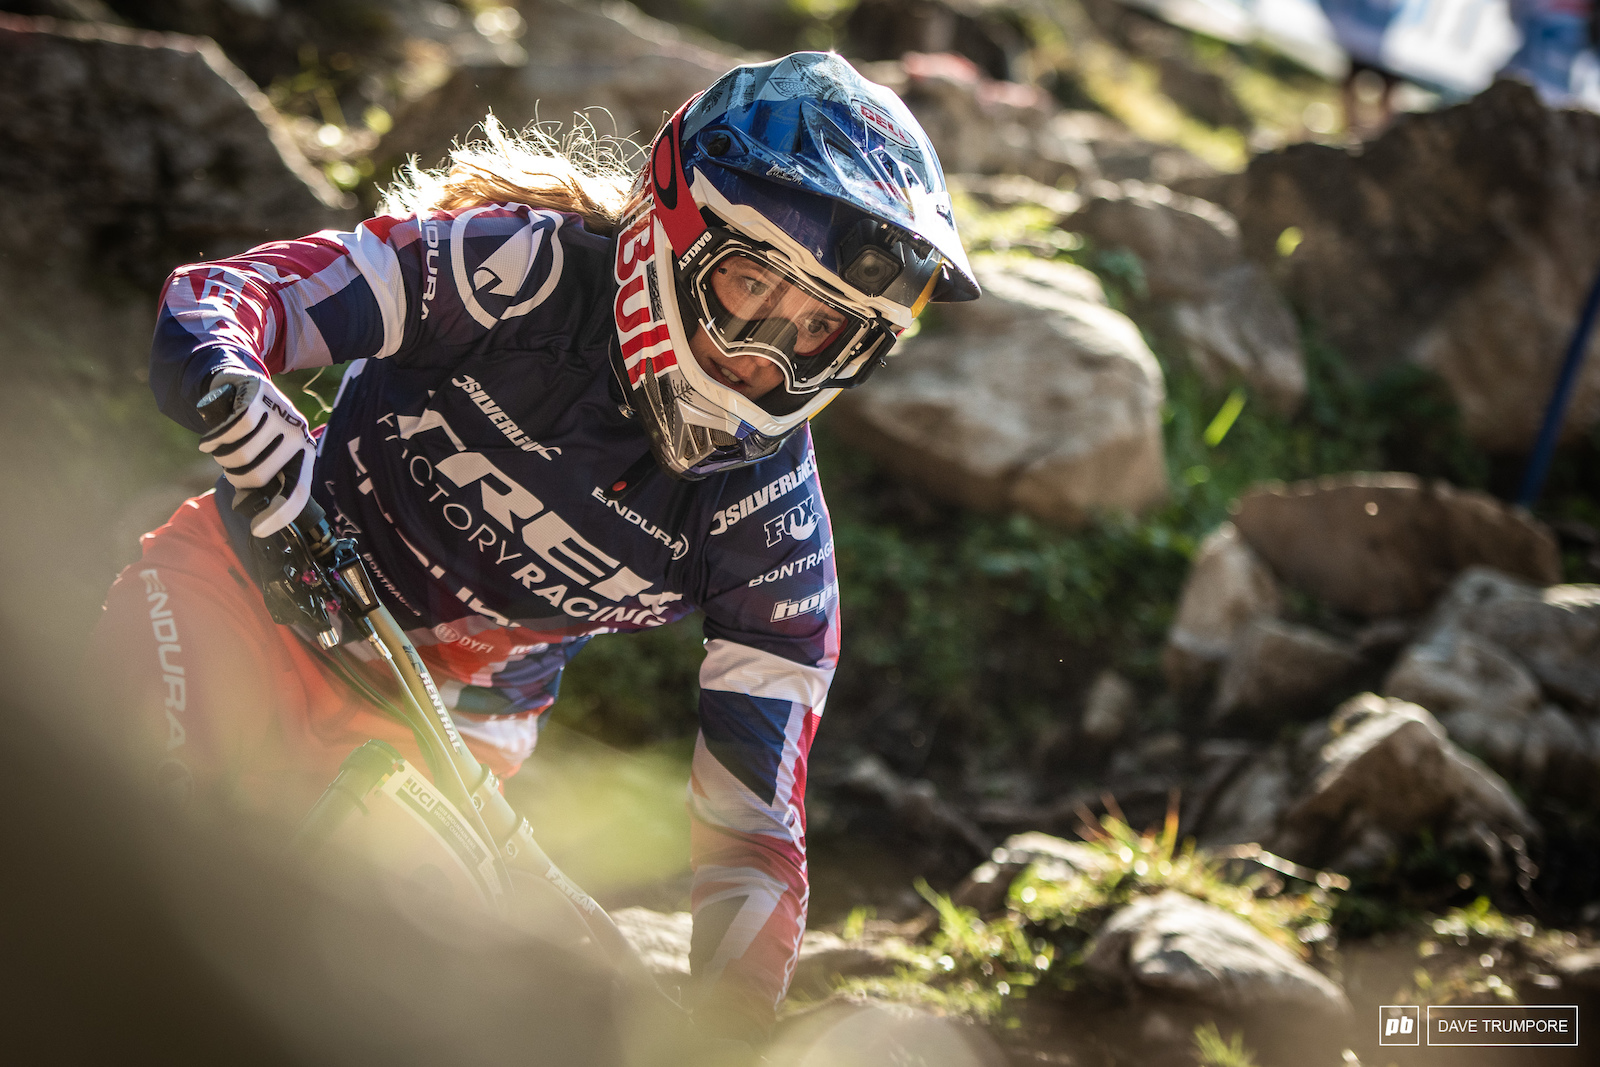 Rachel Atherton took her time scouting lines in the rock garden and was looking smoother than most by the end of training.